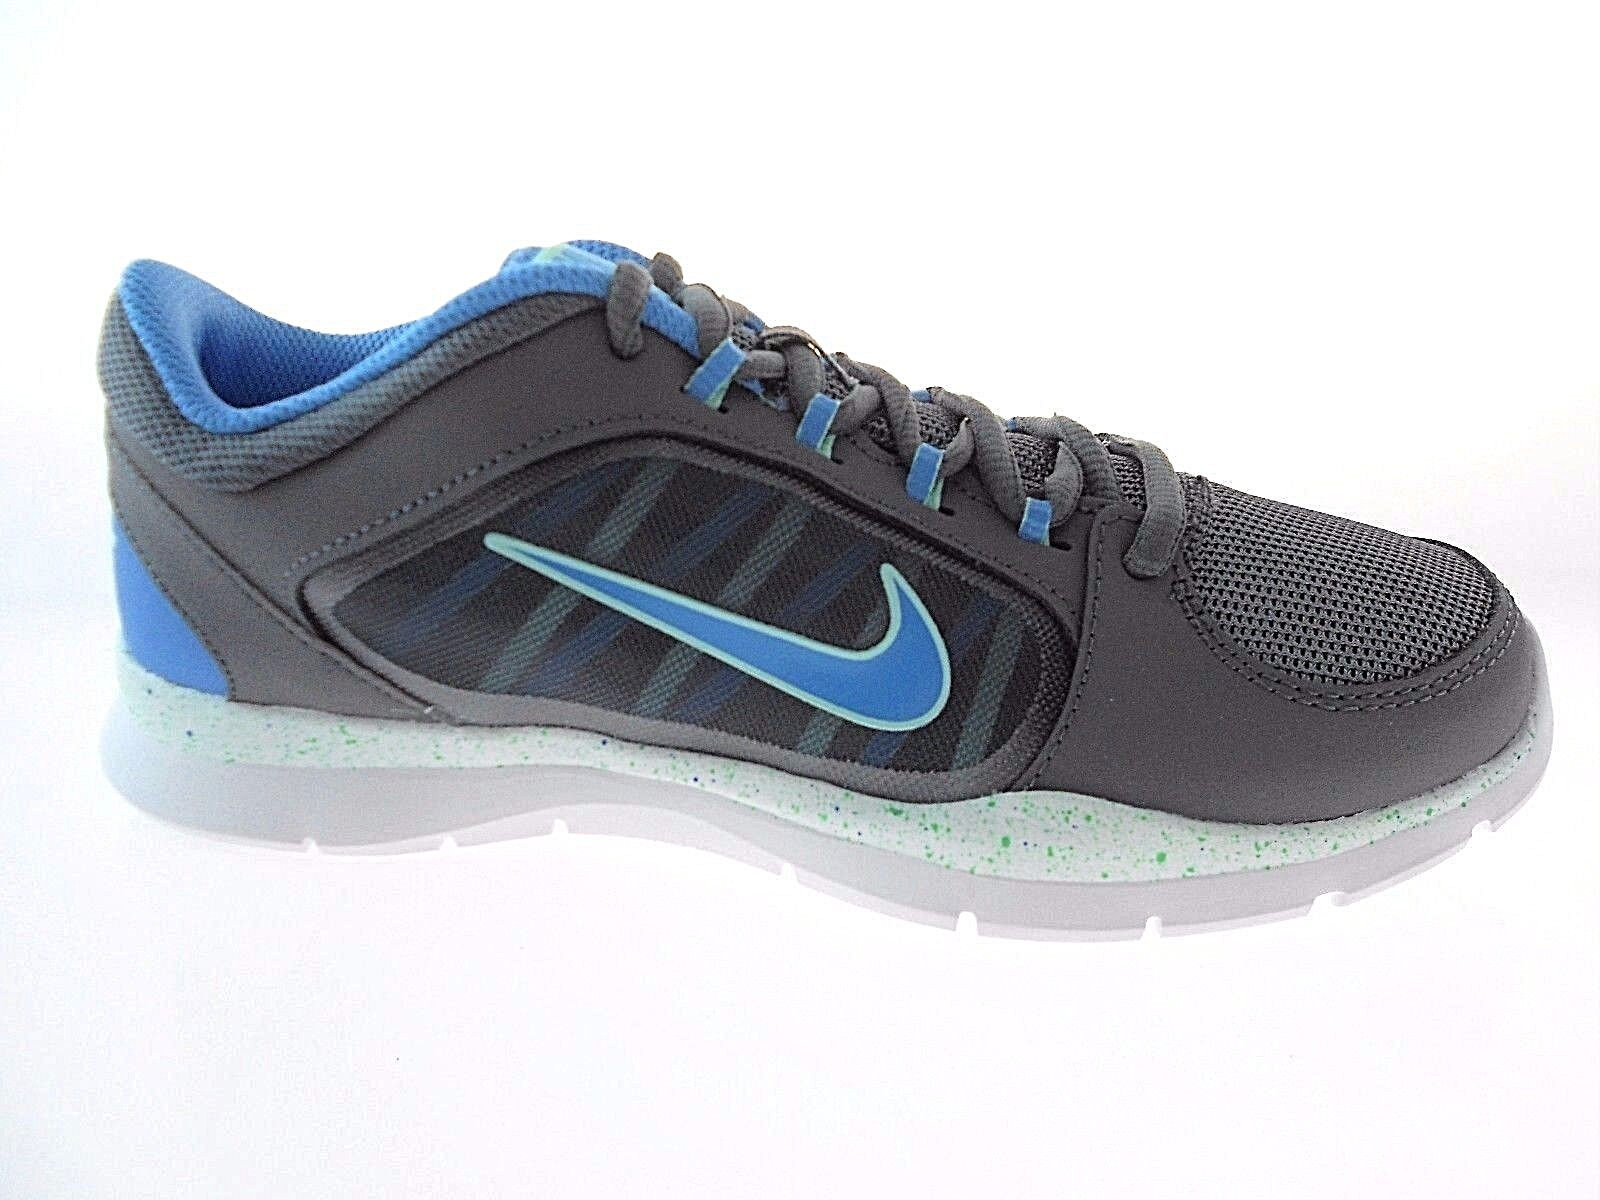 5380c19c3dba Nike Womens Flex Trainer 4 Running 643083-005 Shoes Super Fast 7 for ...